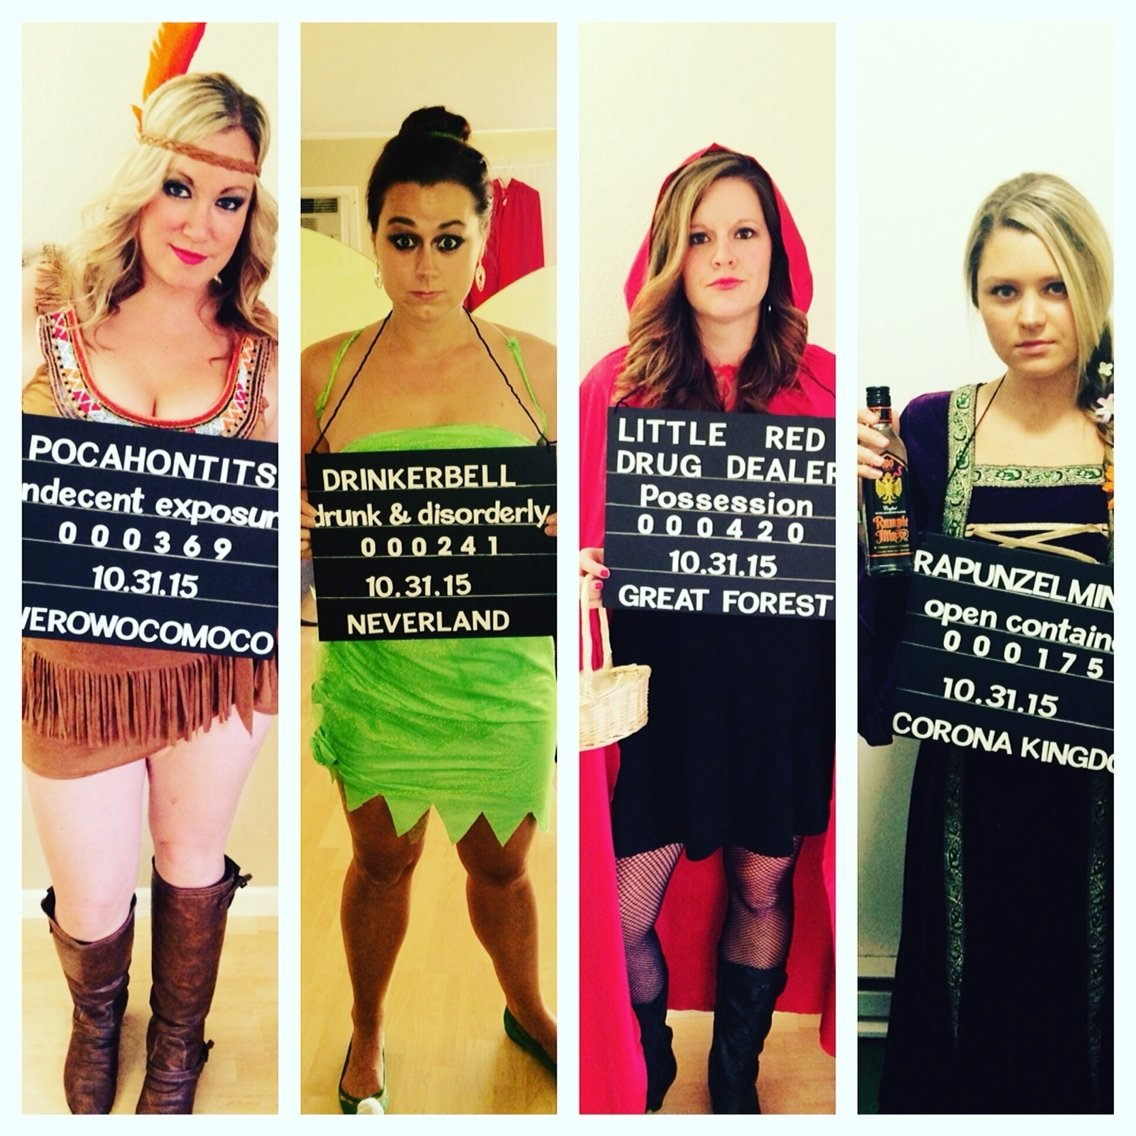 10 Pretty Group Costume Ideas For 6 disney princess criminals besthalloween costumes ever halloween 1 2020